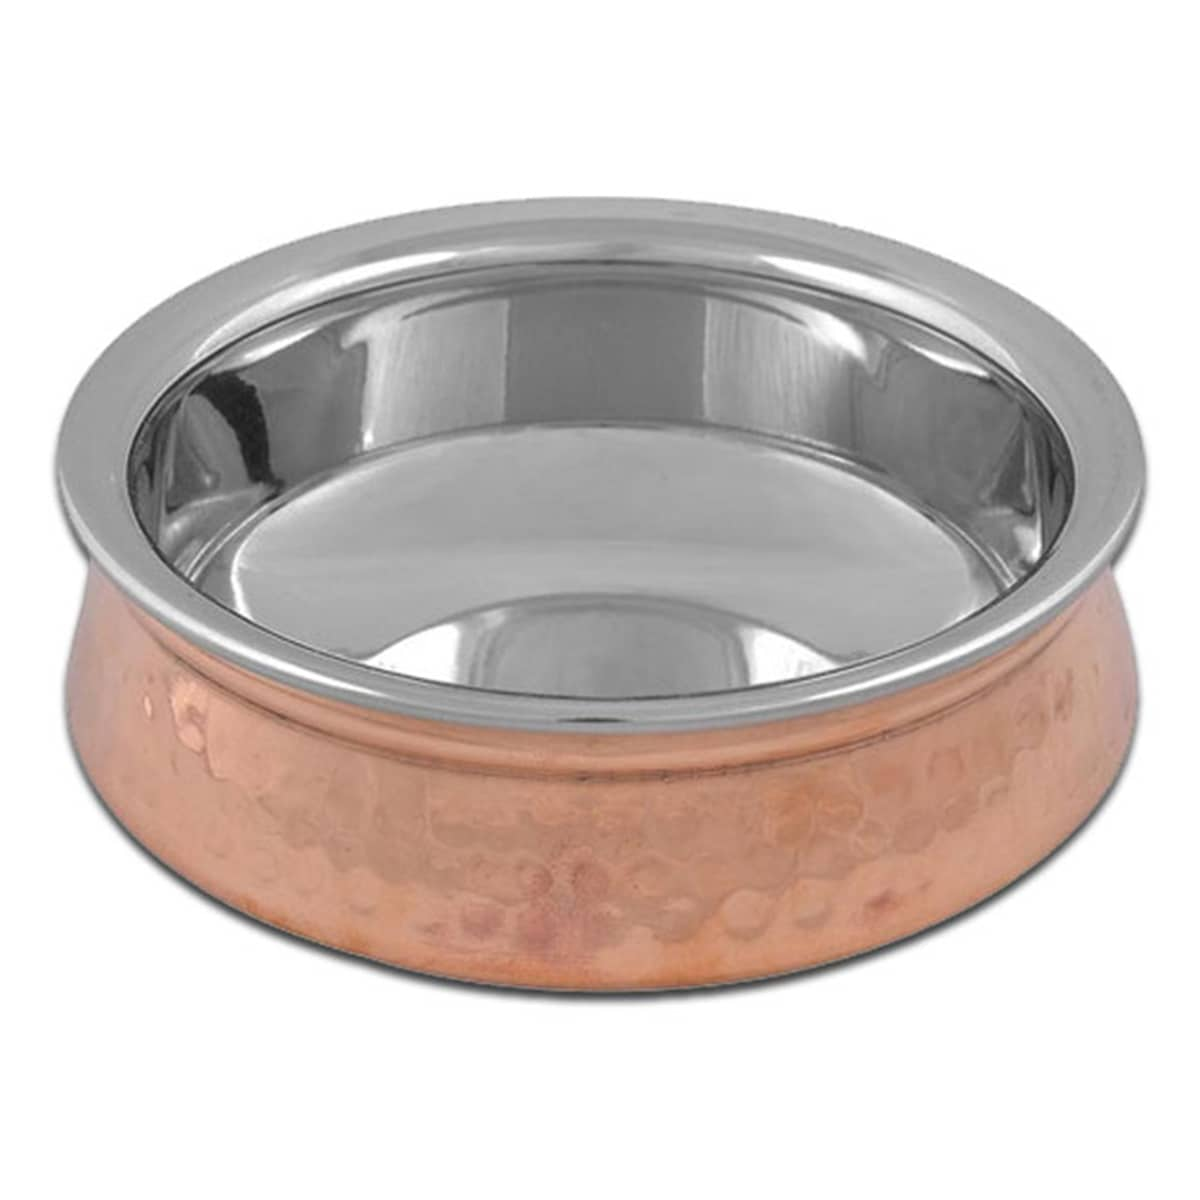 Buy IAG Products Copper and Steel Serving Dish (Handi) - 410 gm